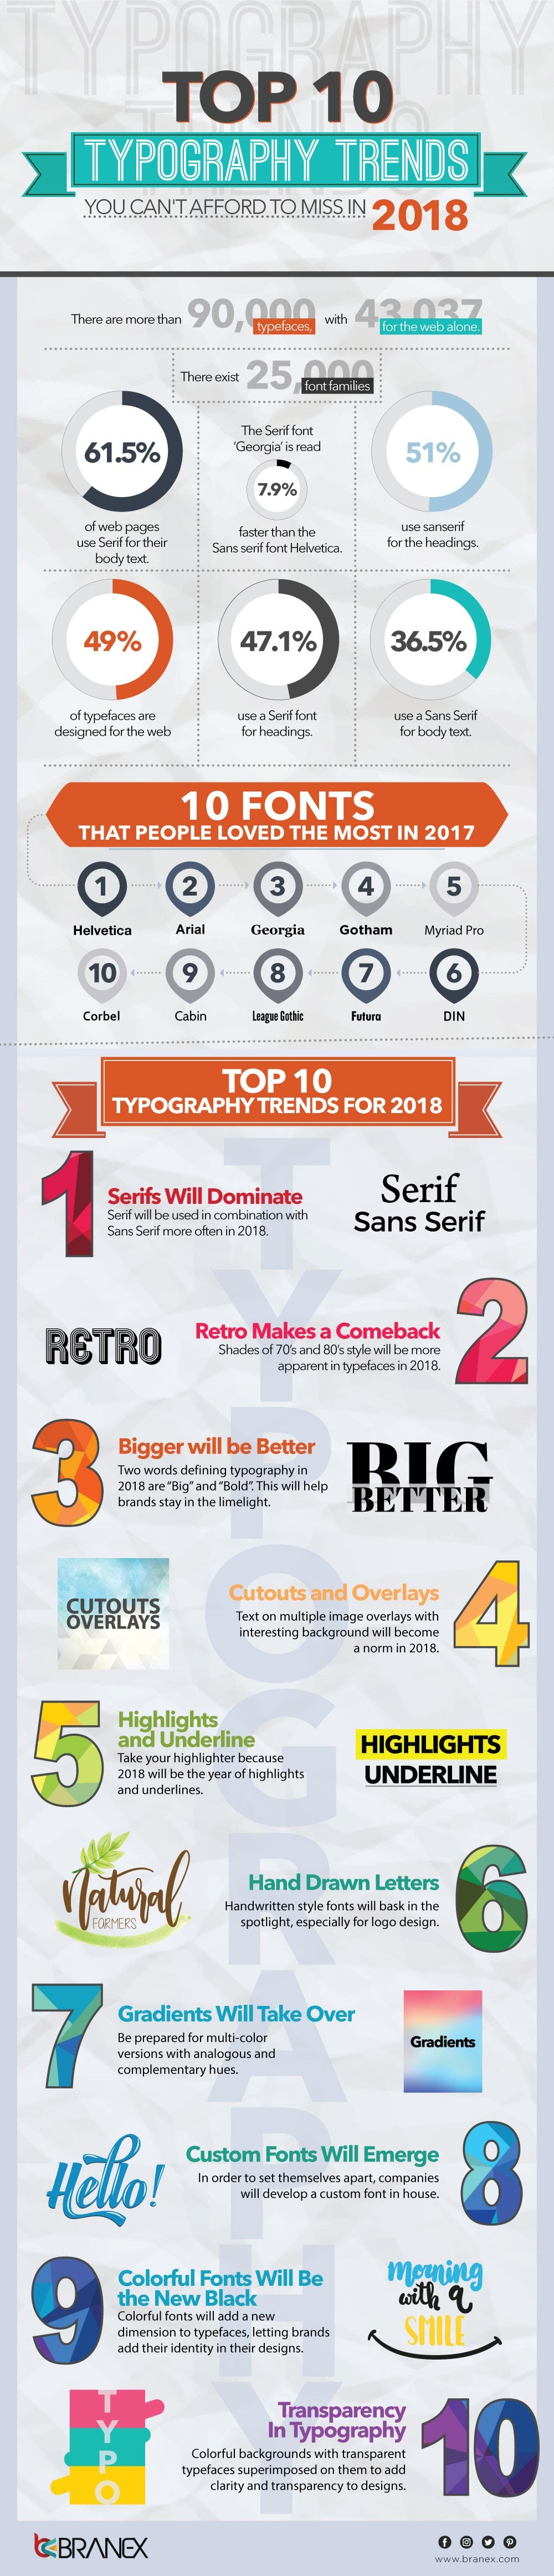 Top 10 Typography Trends For 2018 - #infographic